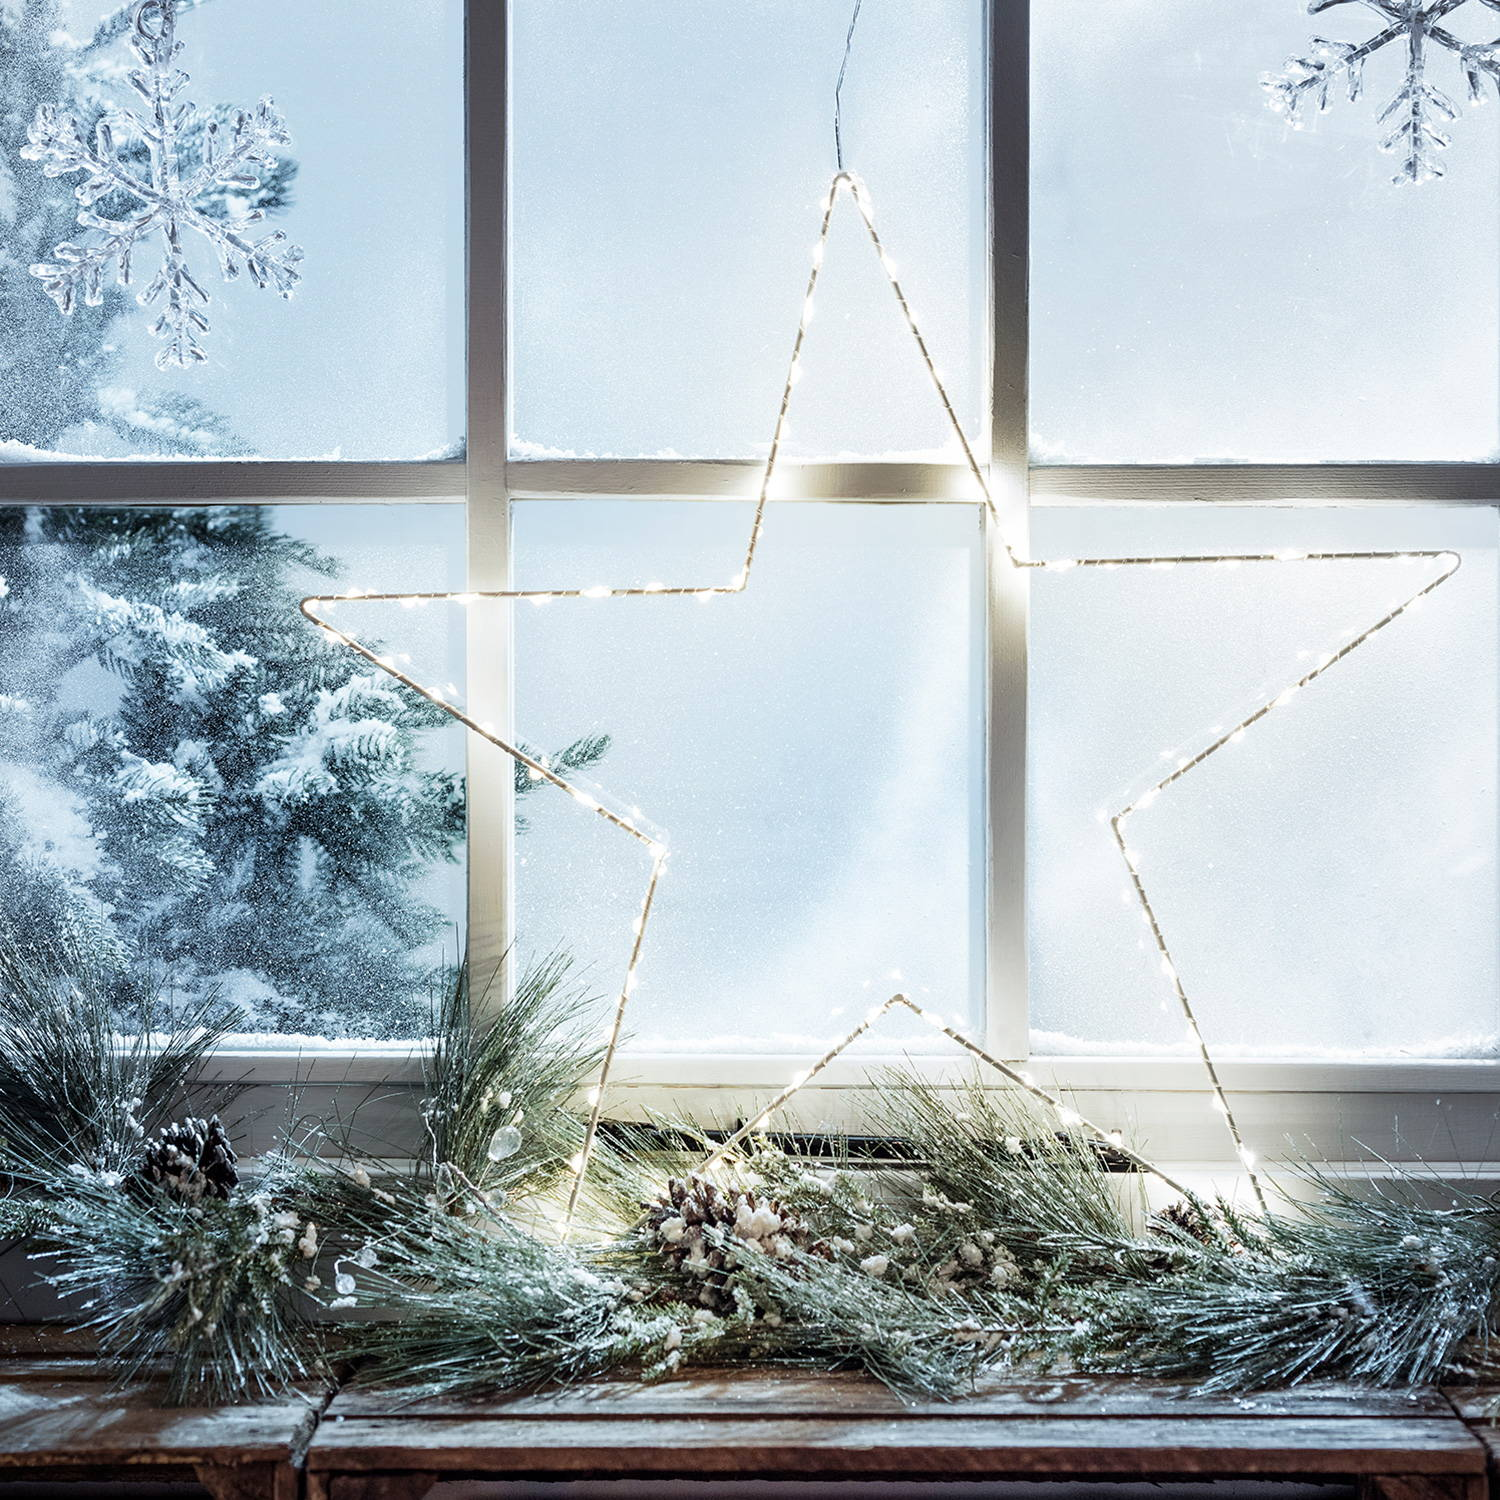 Star Light and Garland on a window ledge